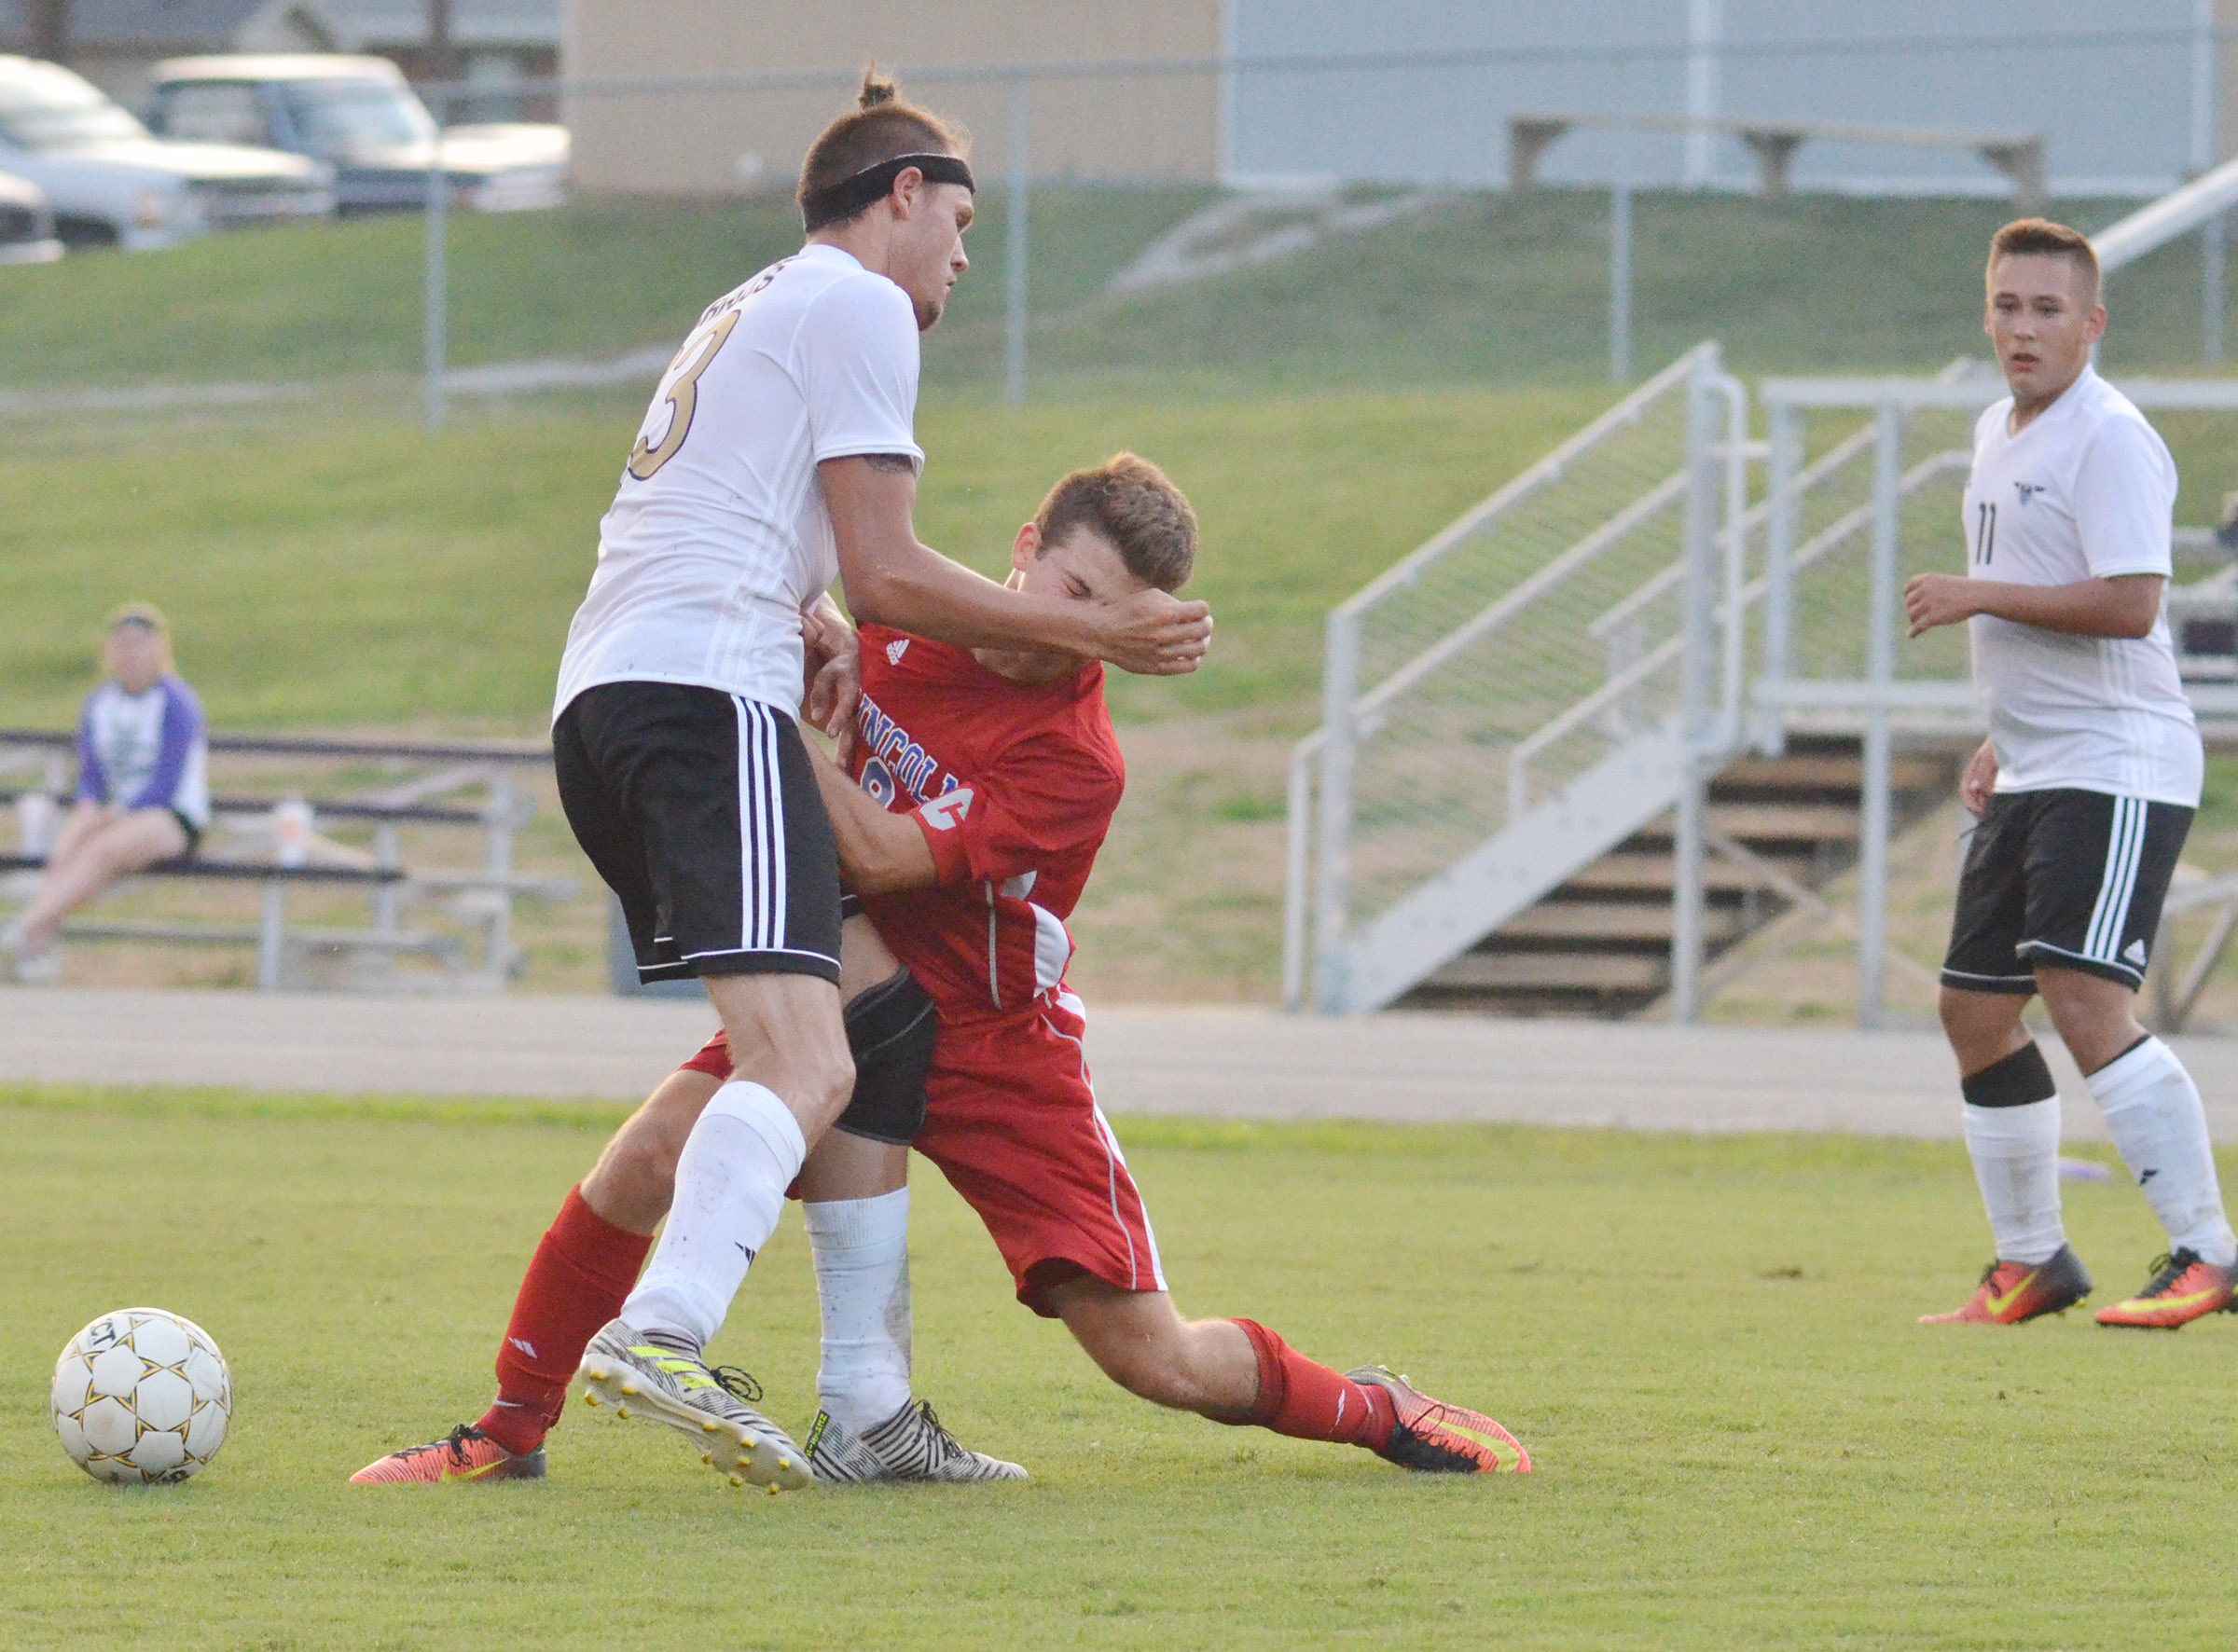 CHS senior Logan Cole battles for the ball.